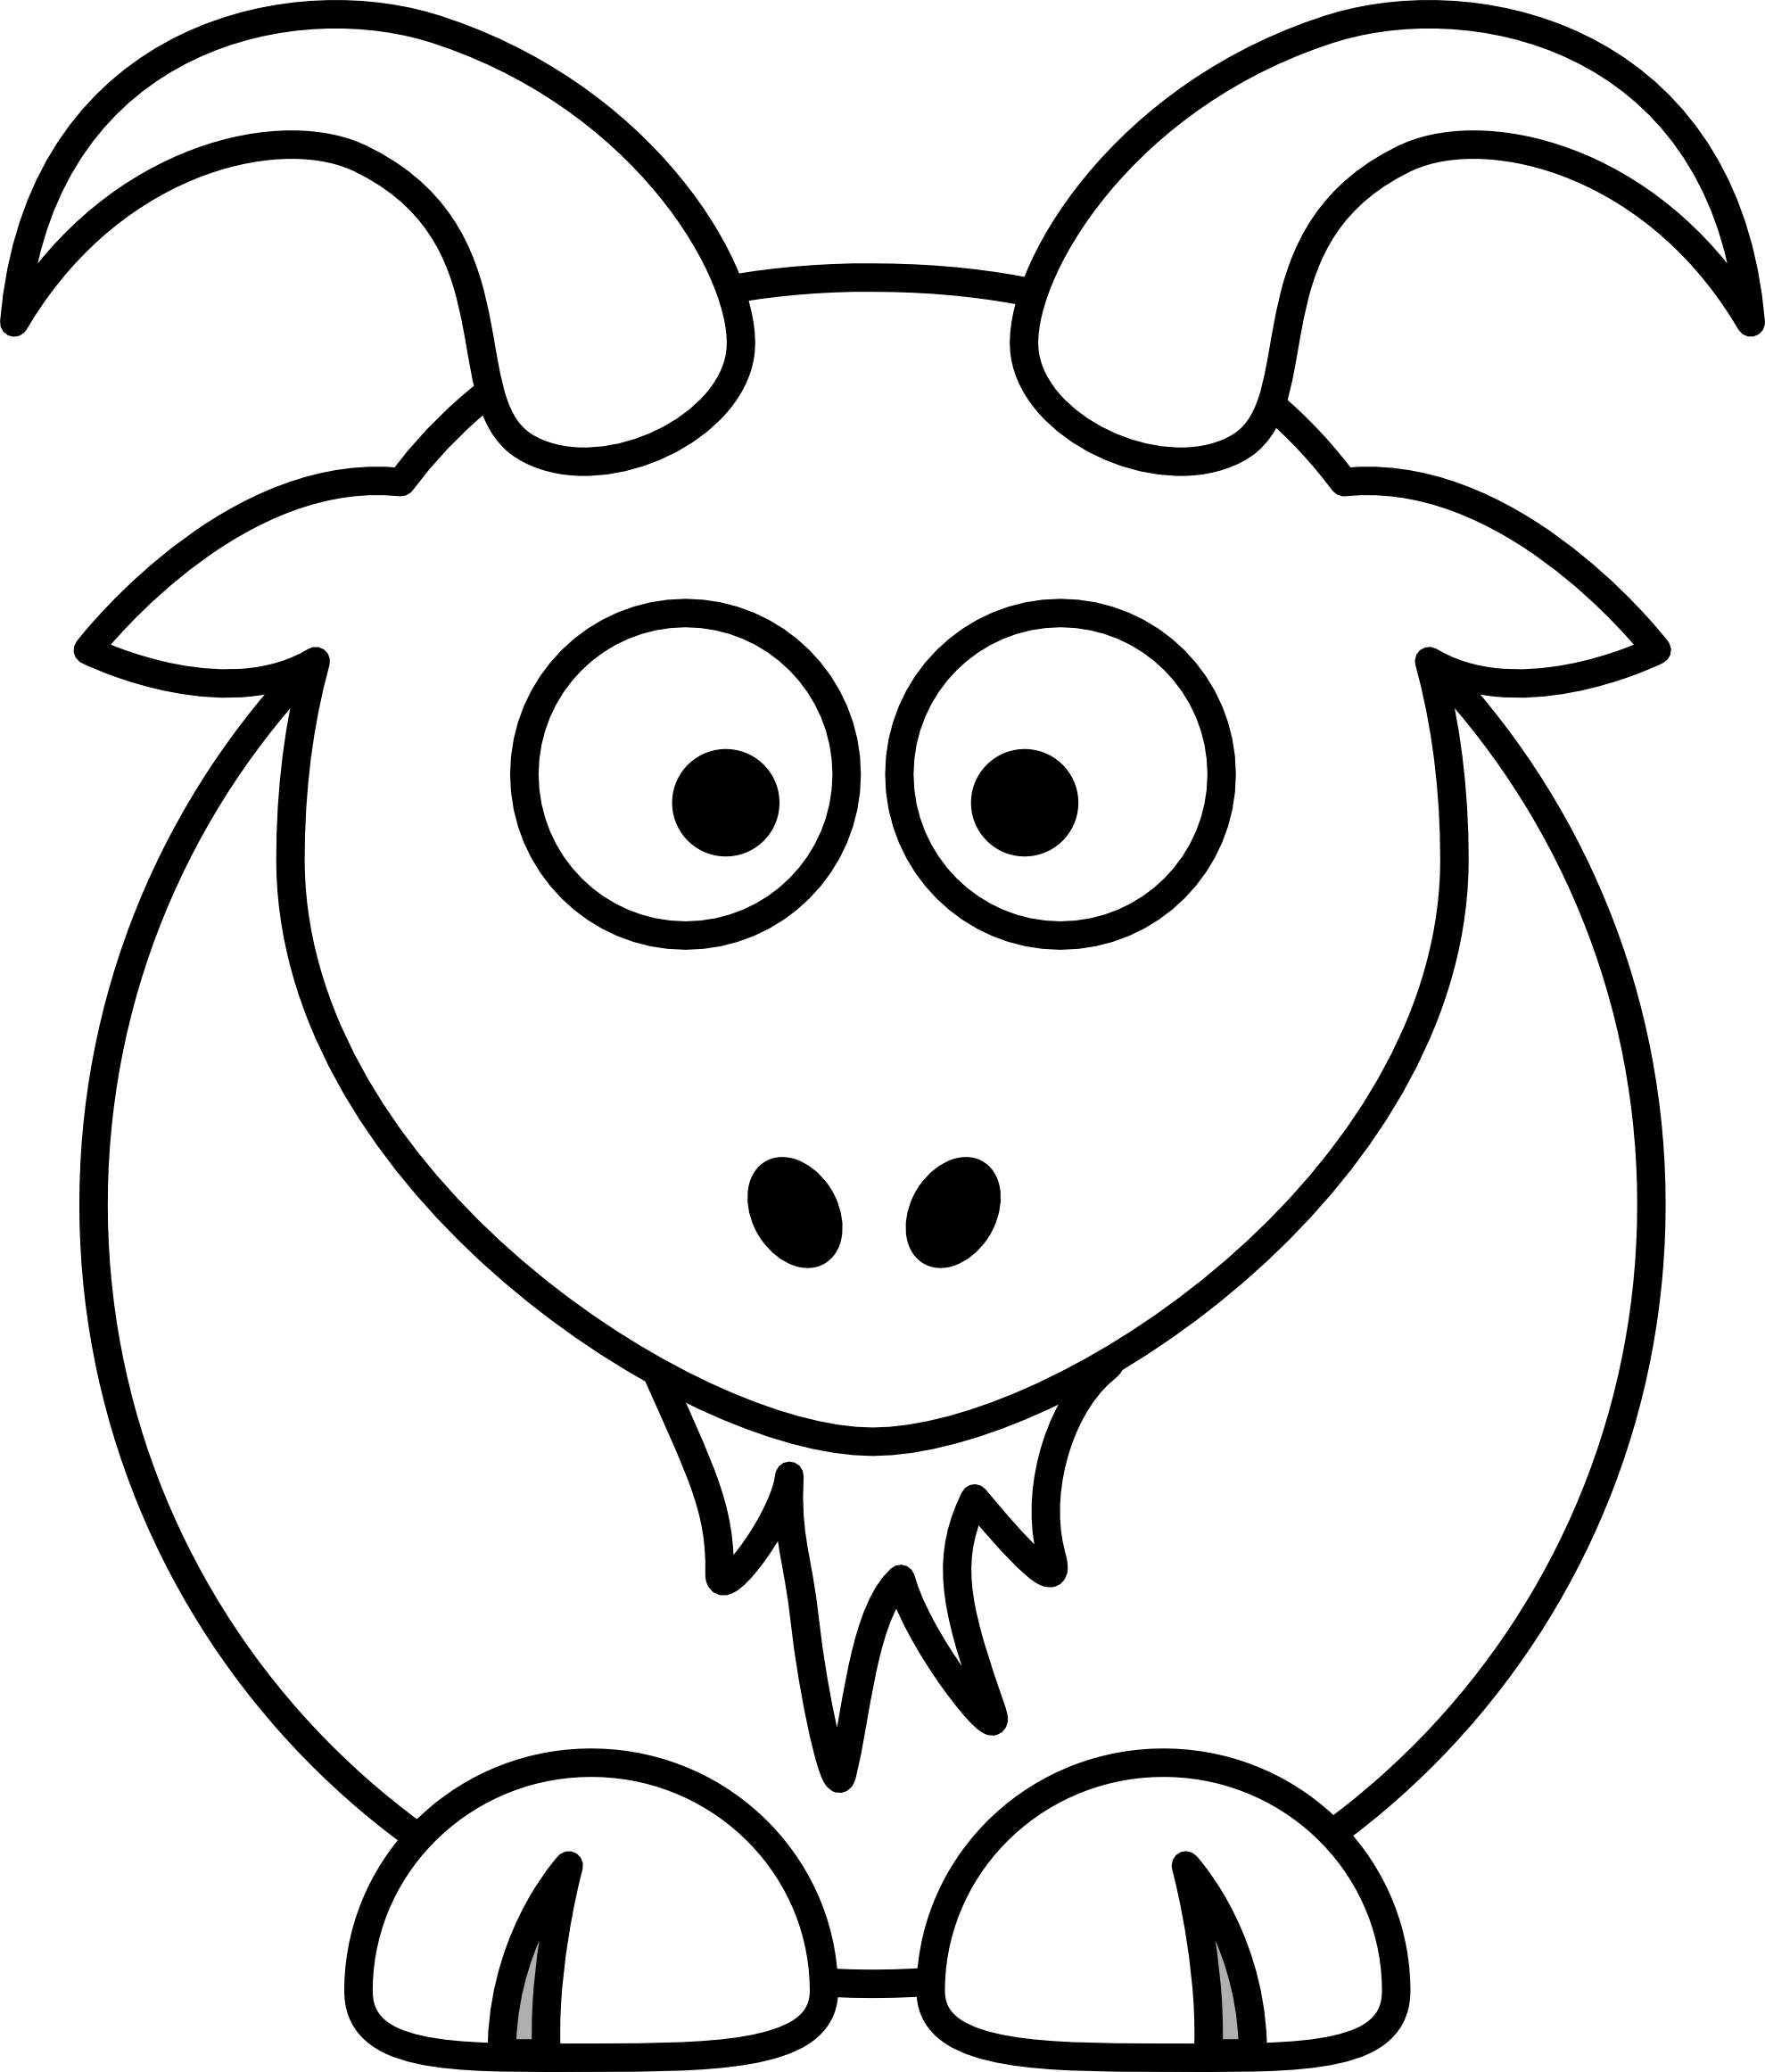 image royalty free download Goat panda free images. Clipart monkey black and white